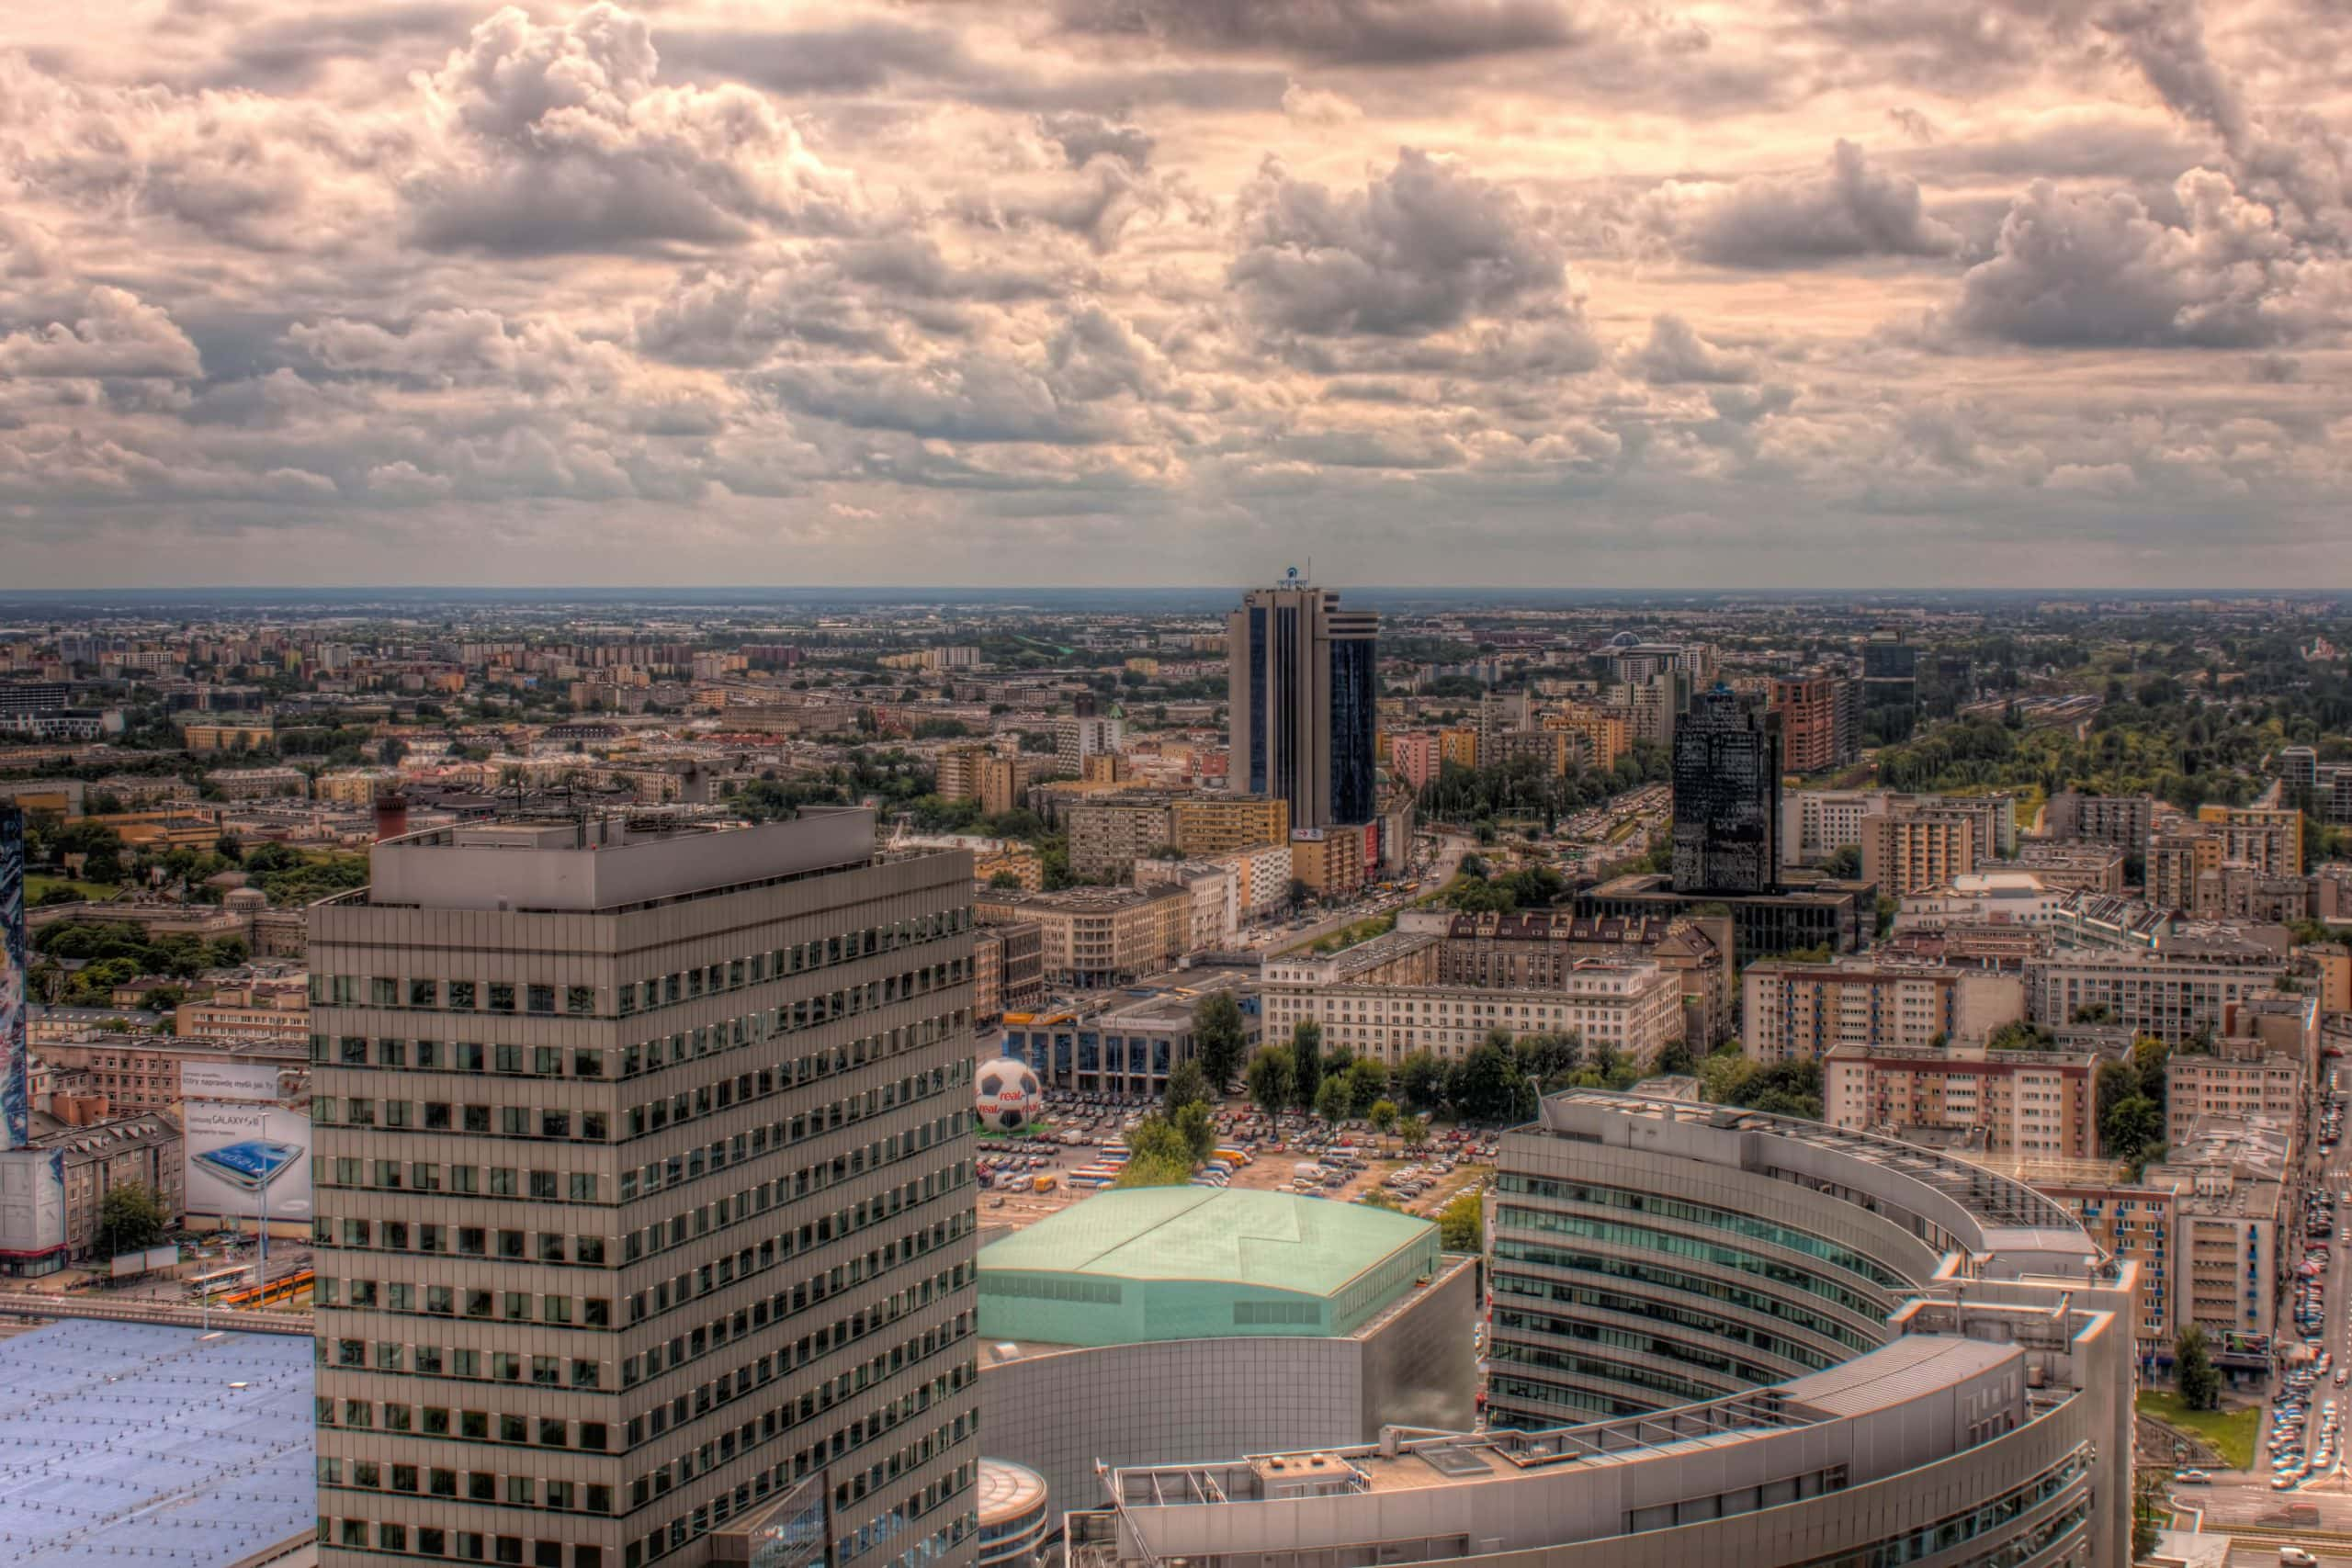 Warsaw panoramic view from the Palace of culture. Poland